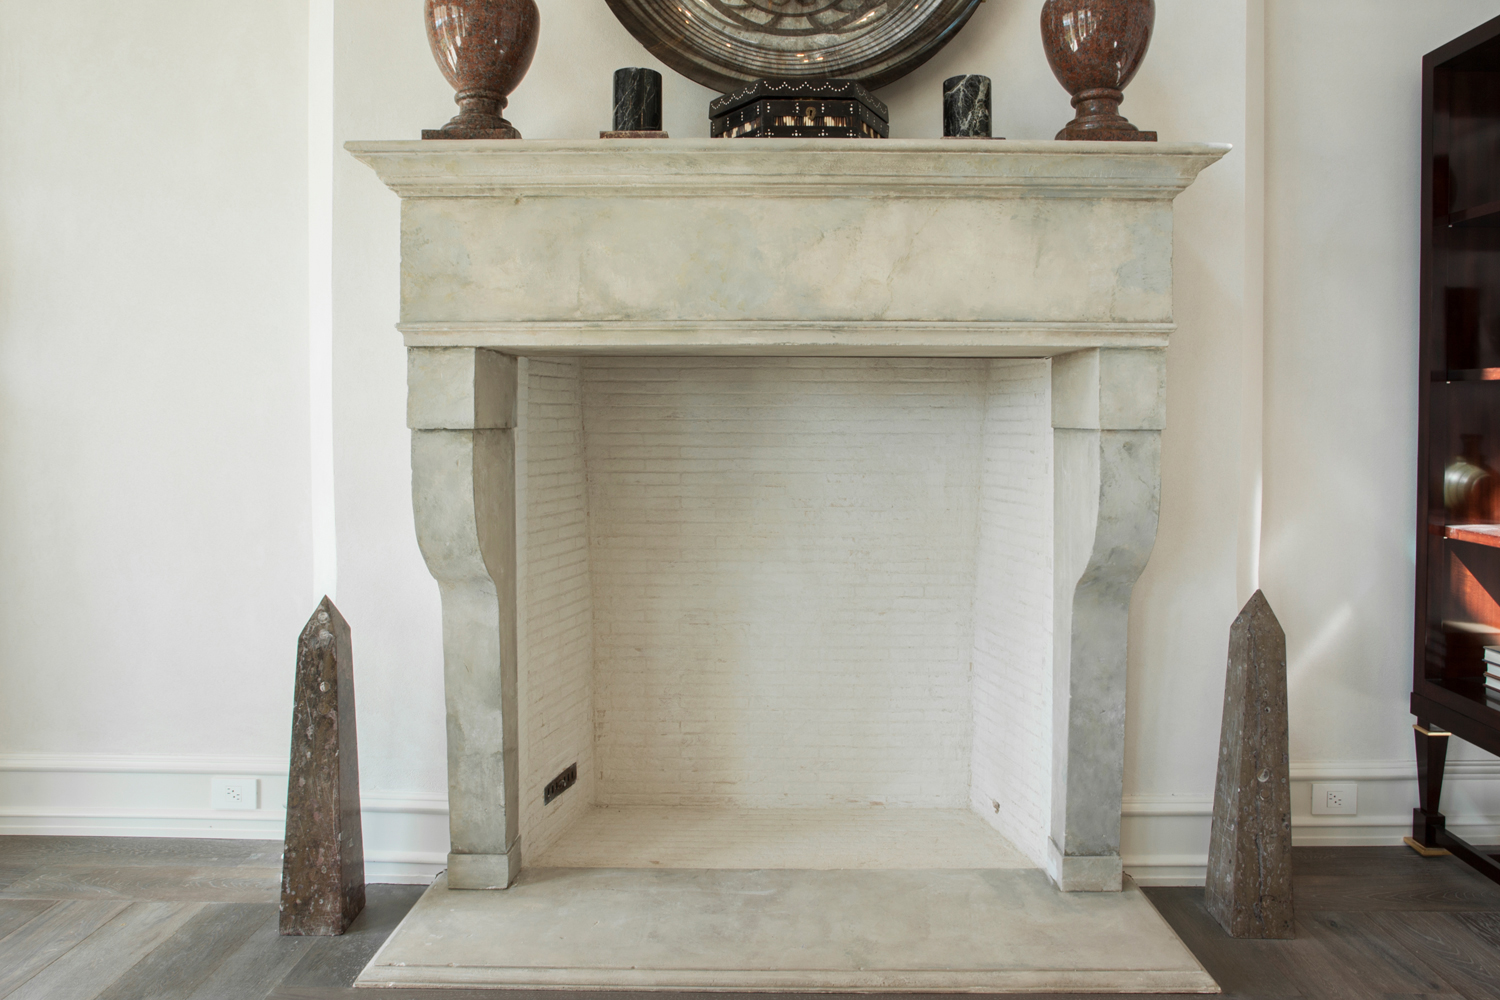 <span>long room fireplace detail</span><span  class='incontracts'>IN CONTRACT </span>